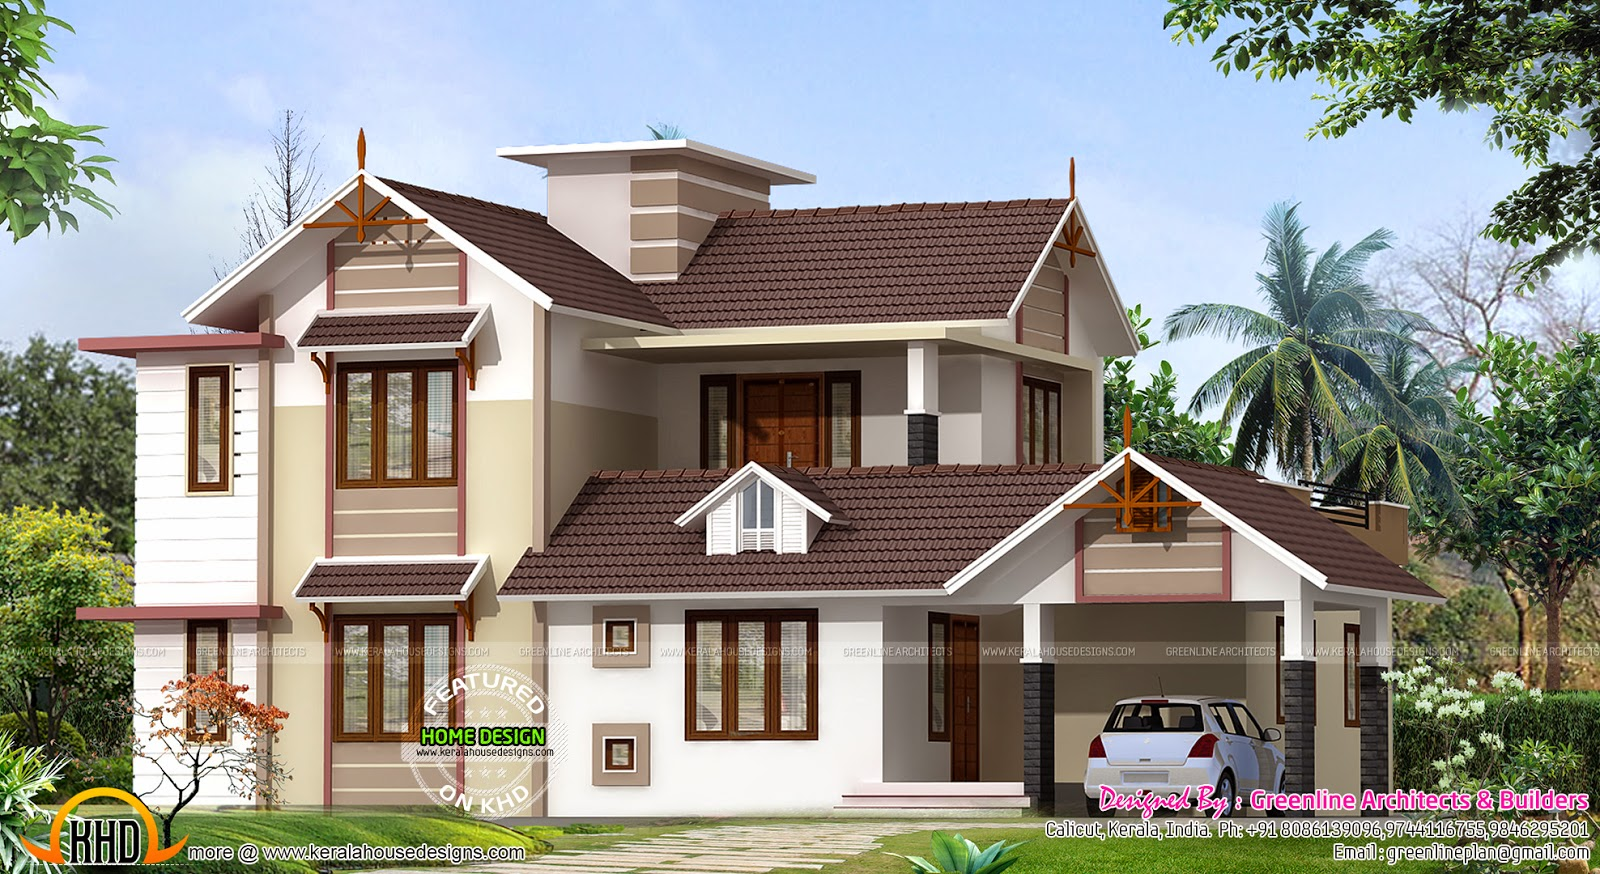 2400 sq ft new house design kerala home design and floor for New house bedroom ideas